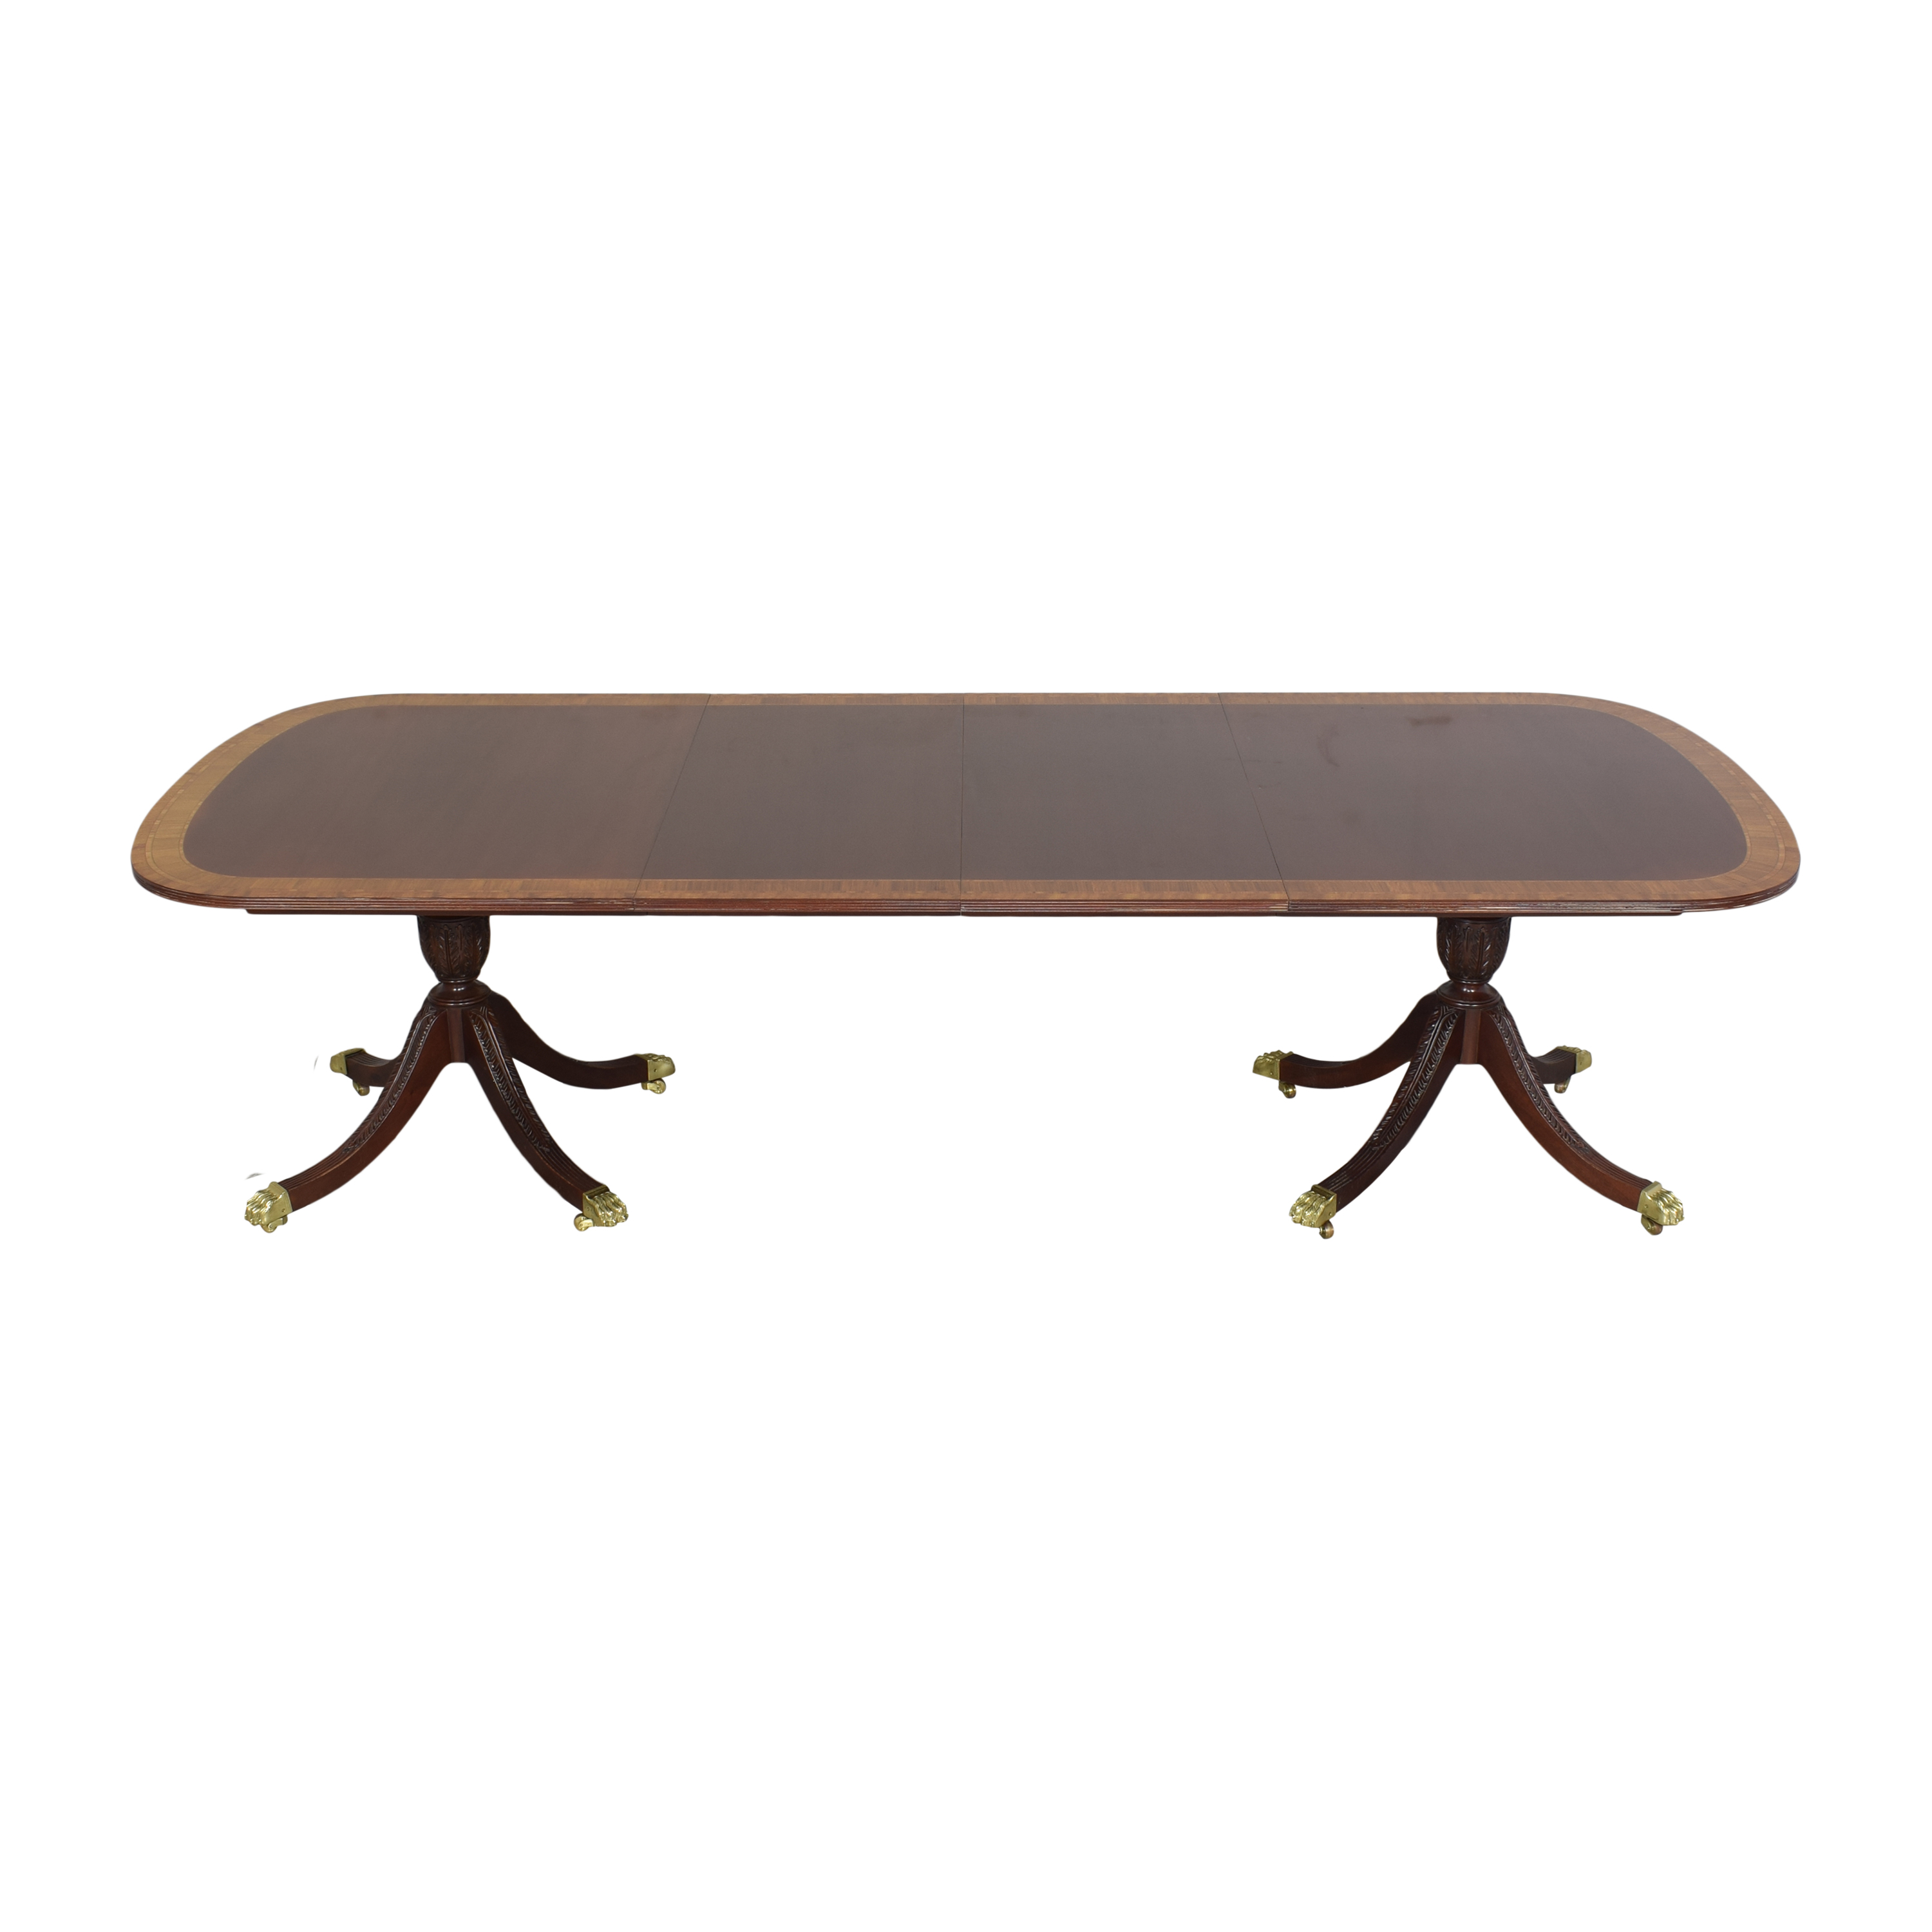 Councill Councill Extendable Dining Table nj